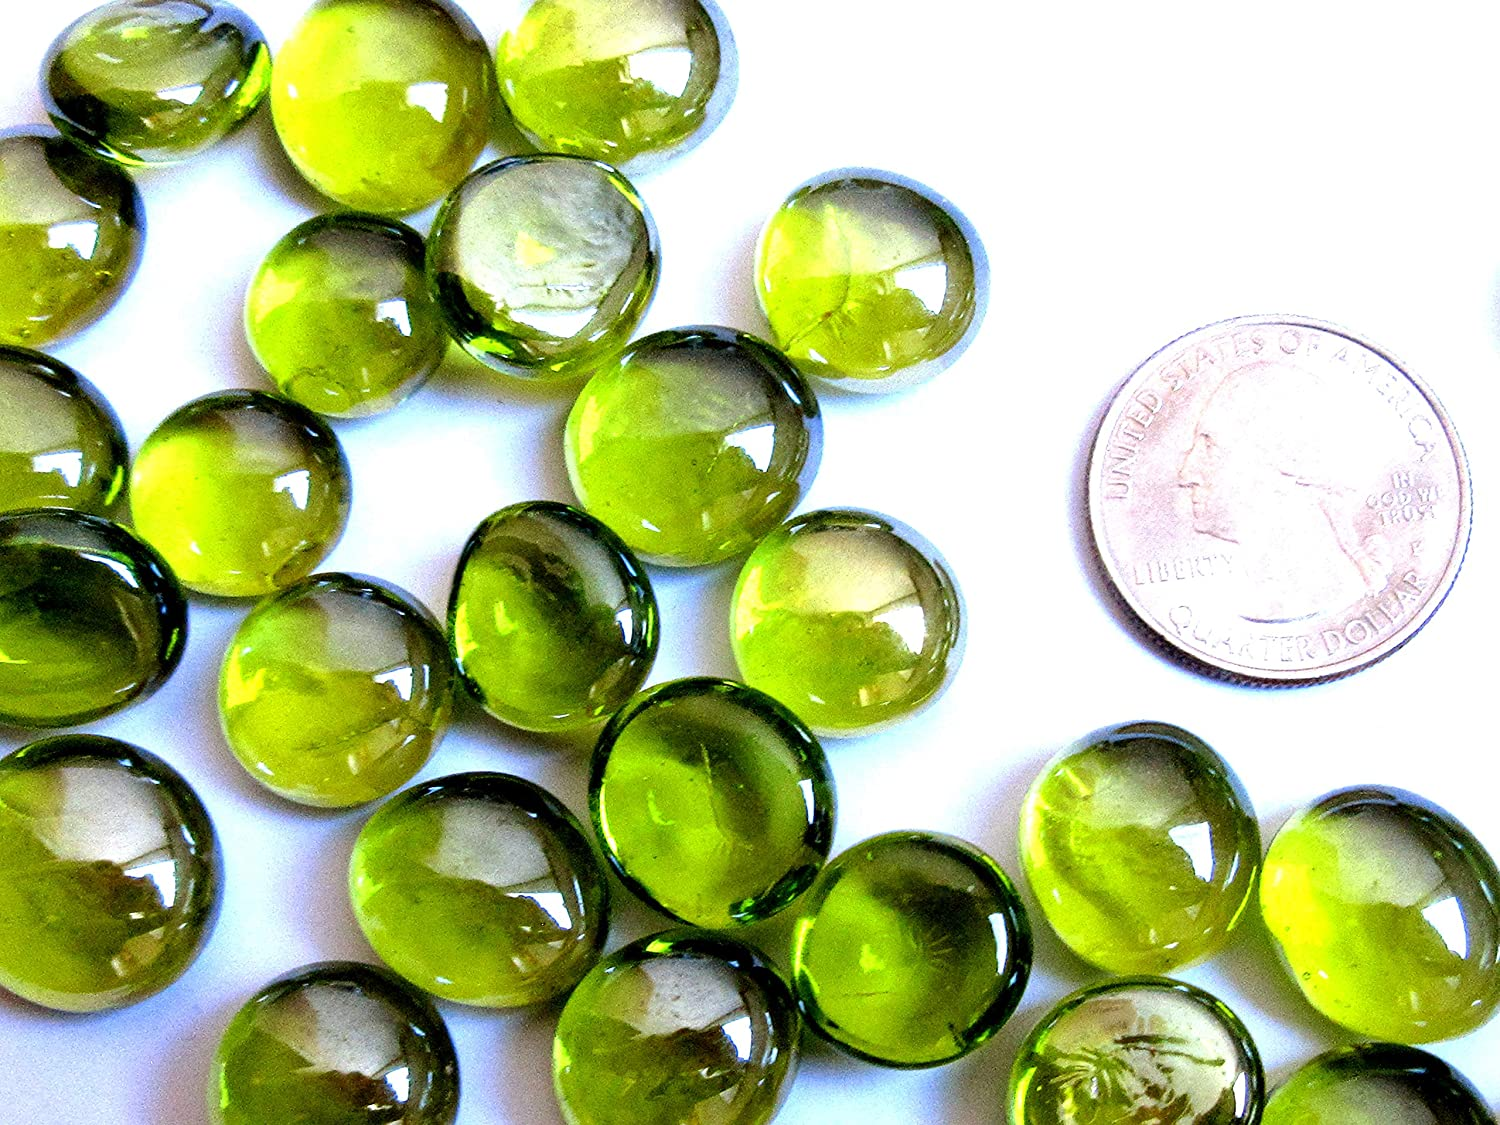 50 Mini Clear Lime Green Glass Gems, 12-16mm Flat Marbles, Vase Fillers, Round Glass Mosaic Tiles- Luster, Small